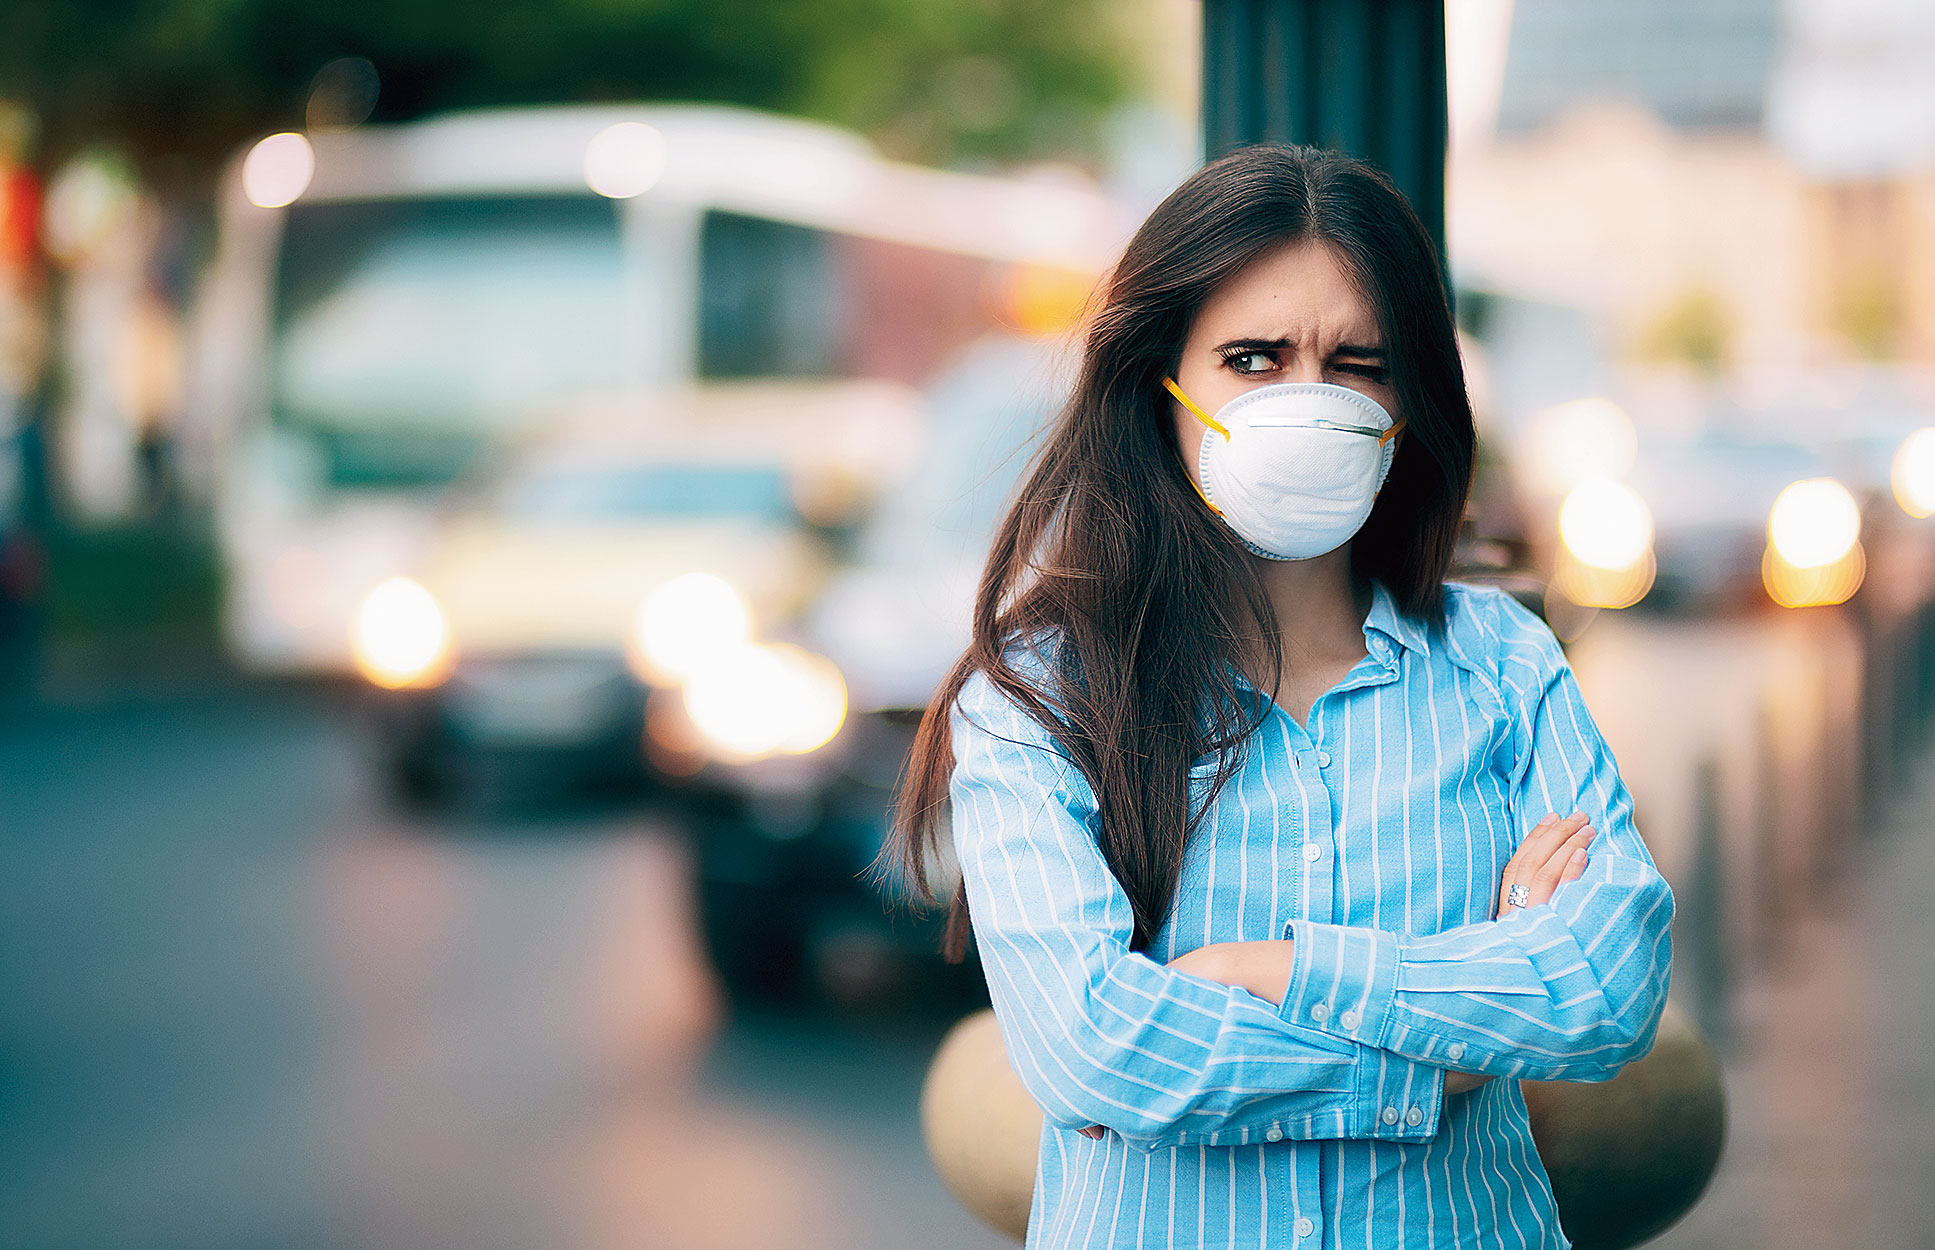 Pollution can cause dementia, asthma, strokes and fertility issues